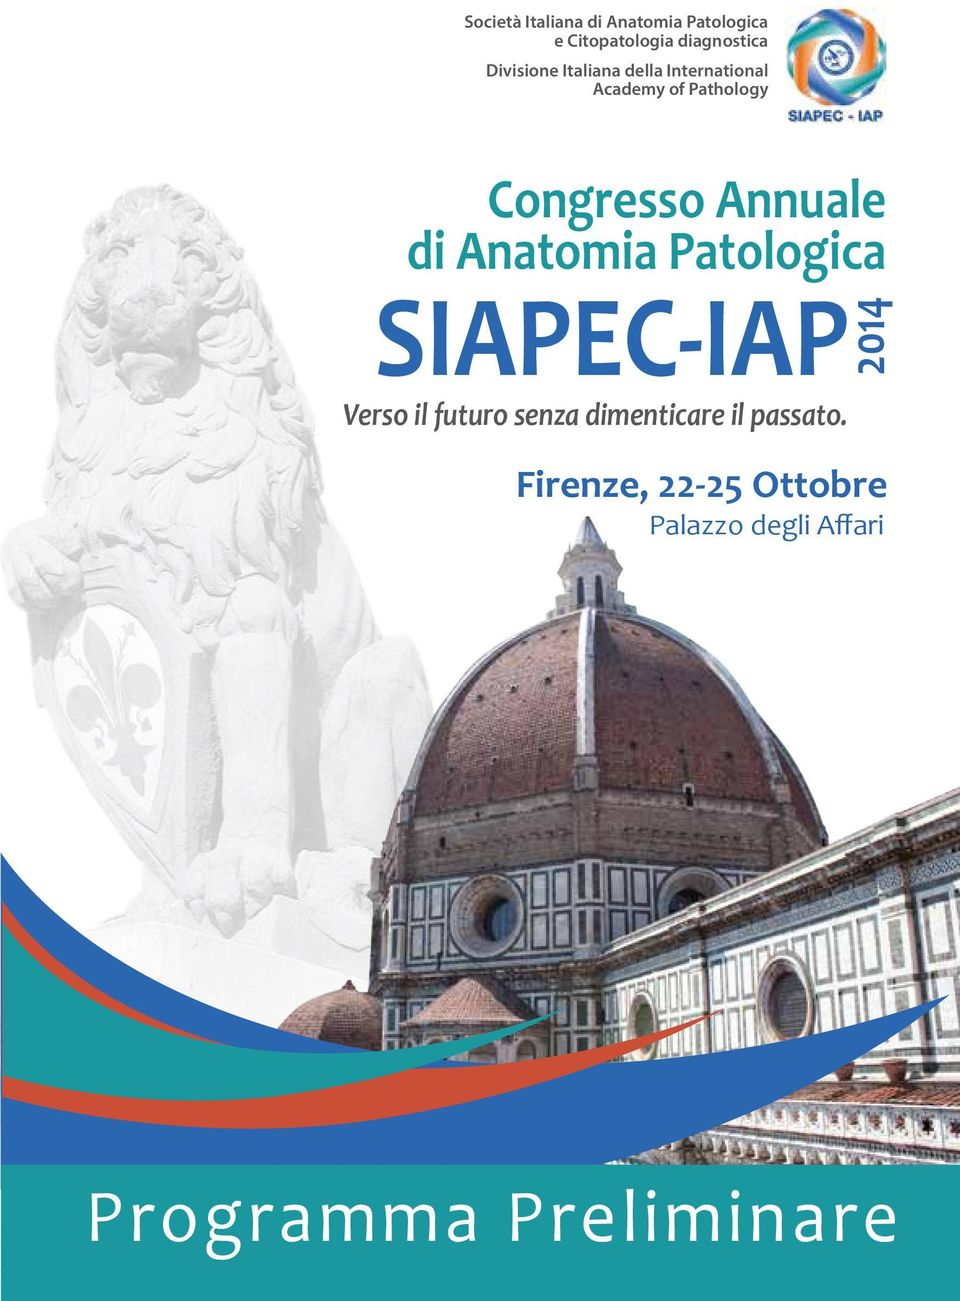 Academy of Pathology Congresso Annuale di Anatomia